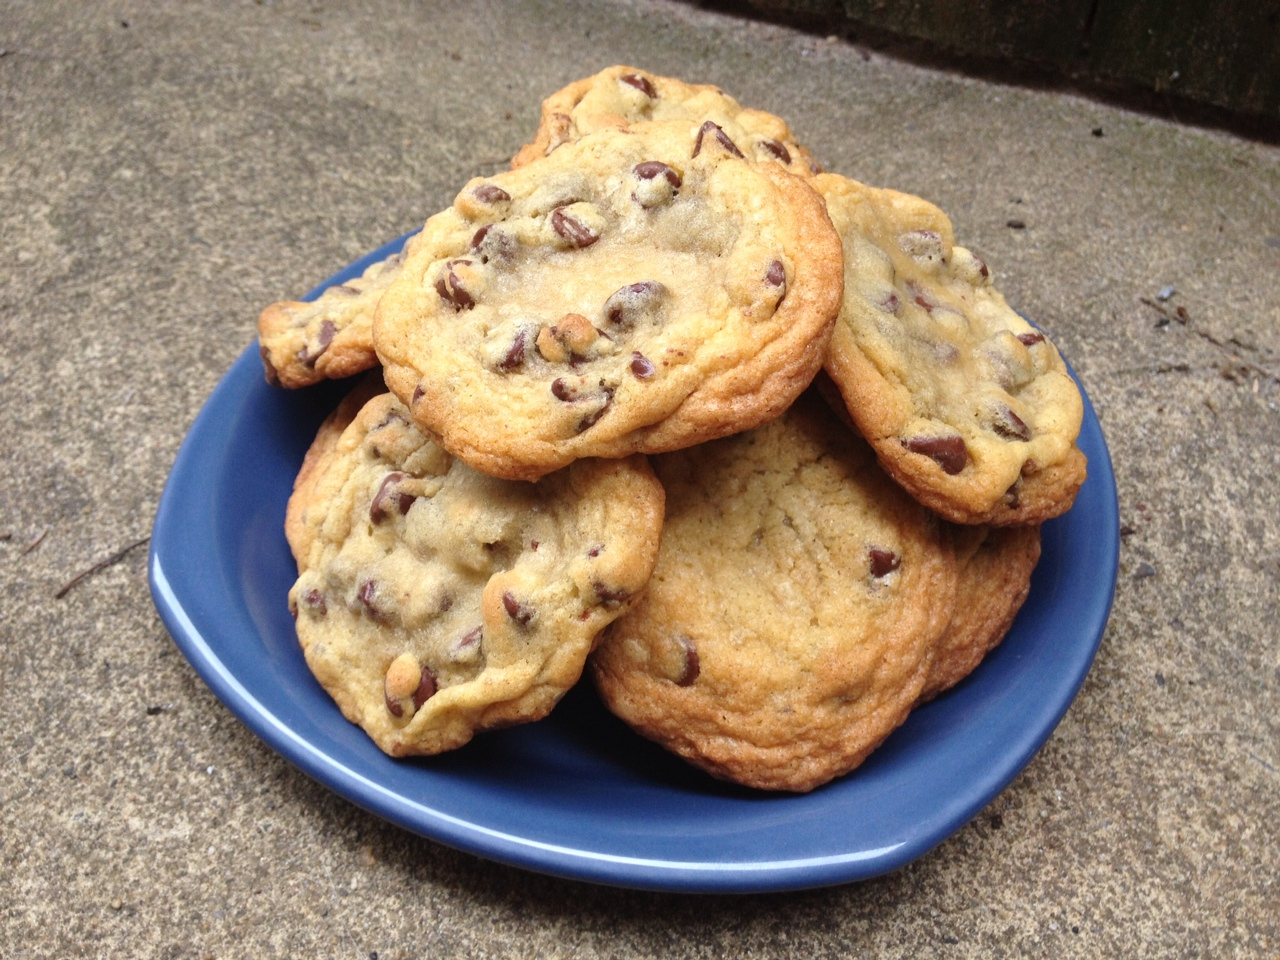 A Less Processed Life: What's Baking: Ghirardelli Chocolate Chip ...